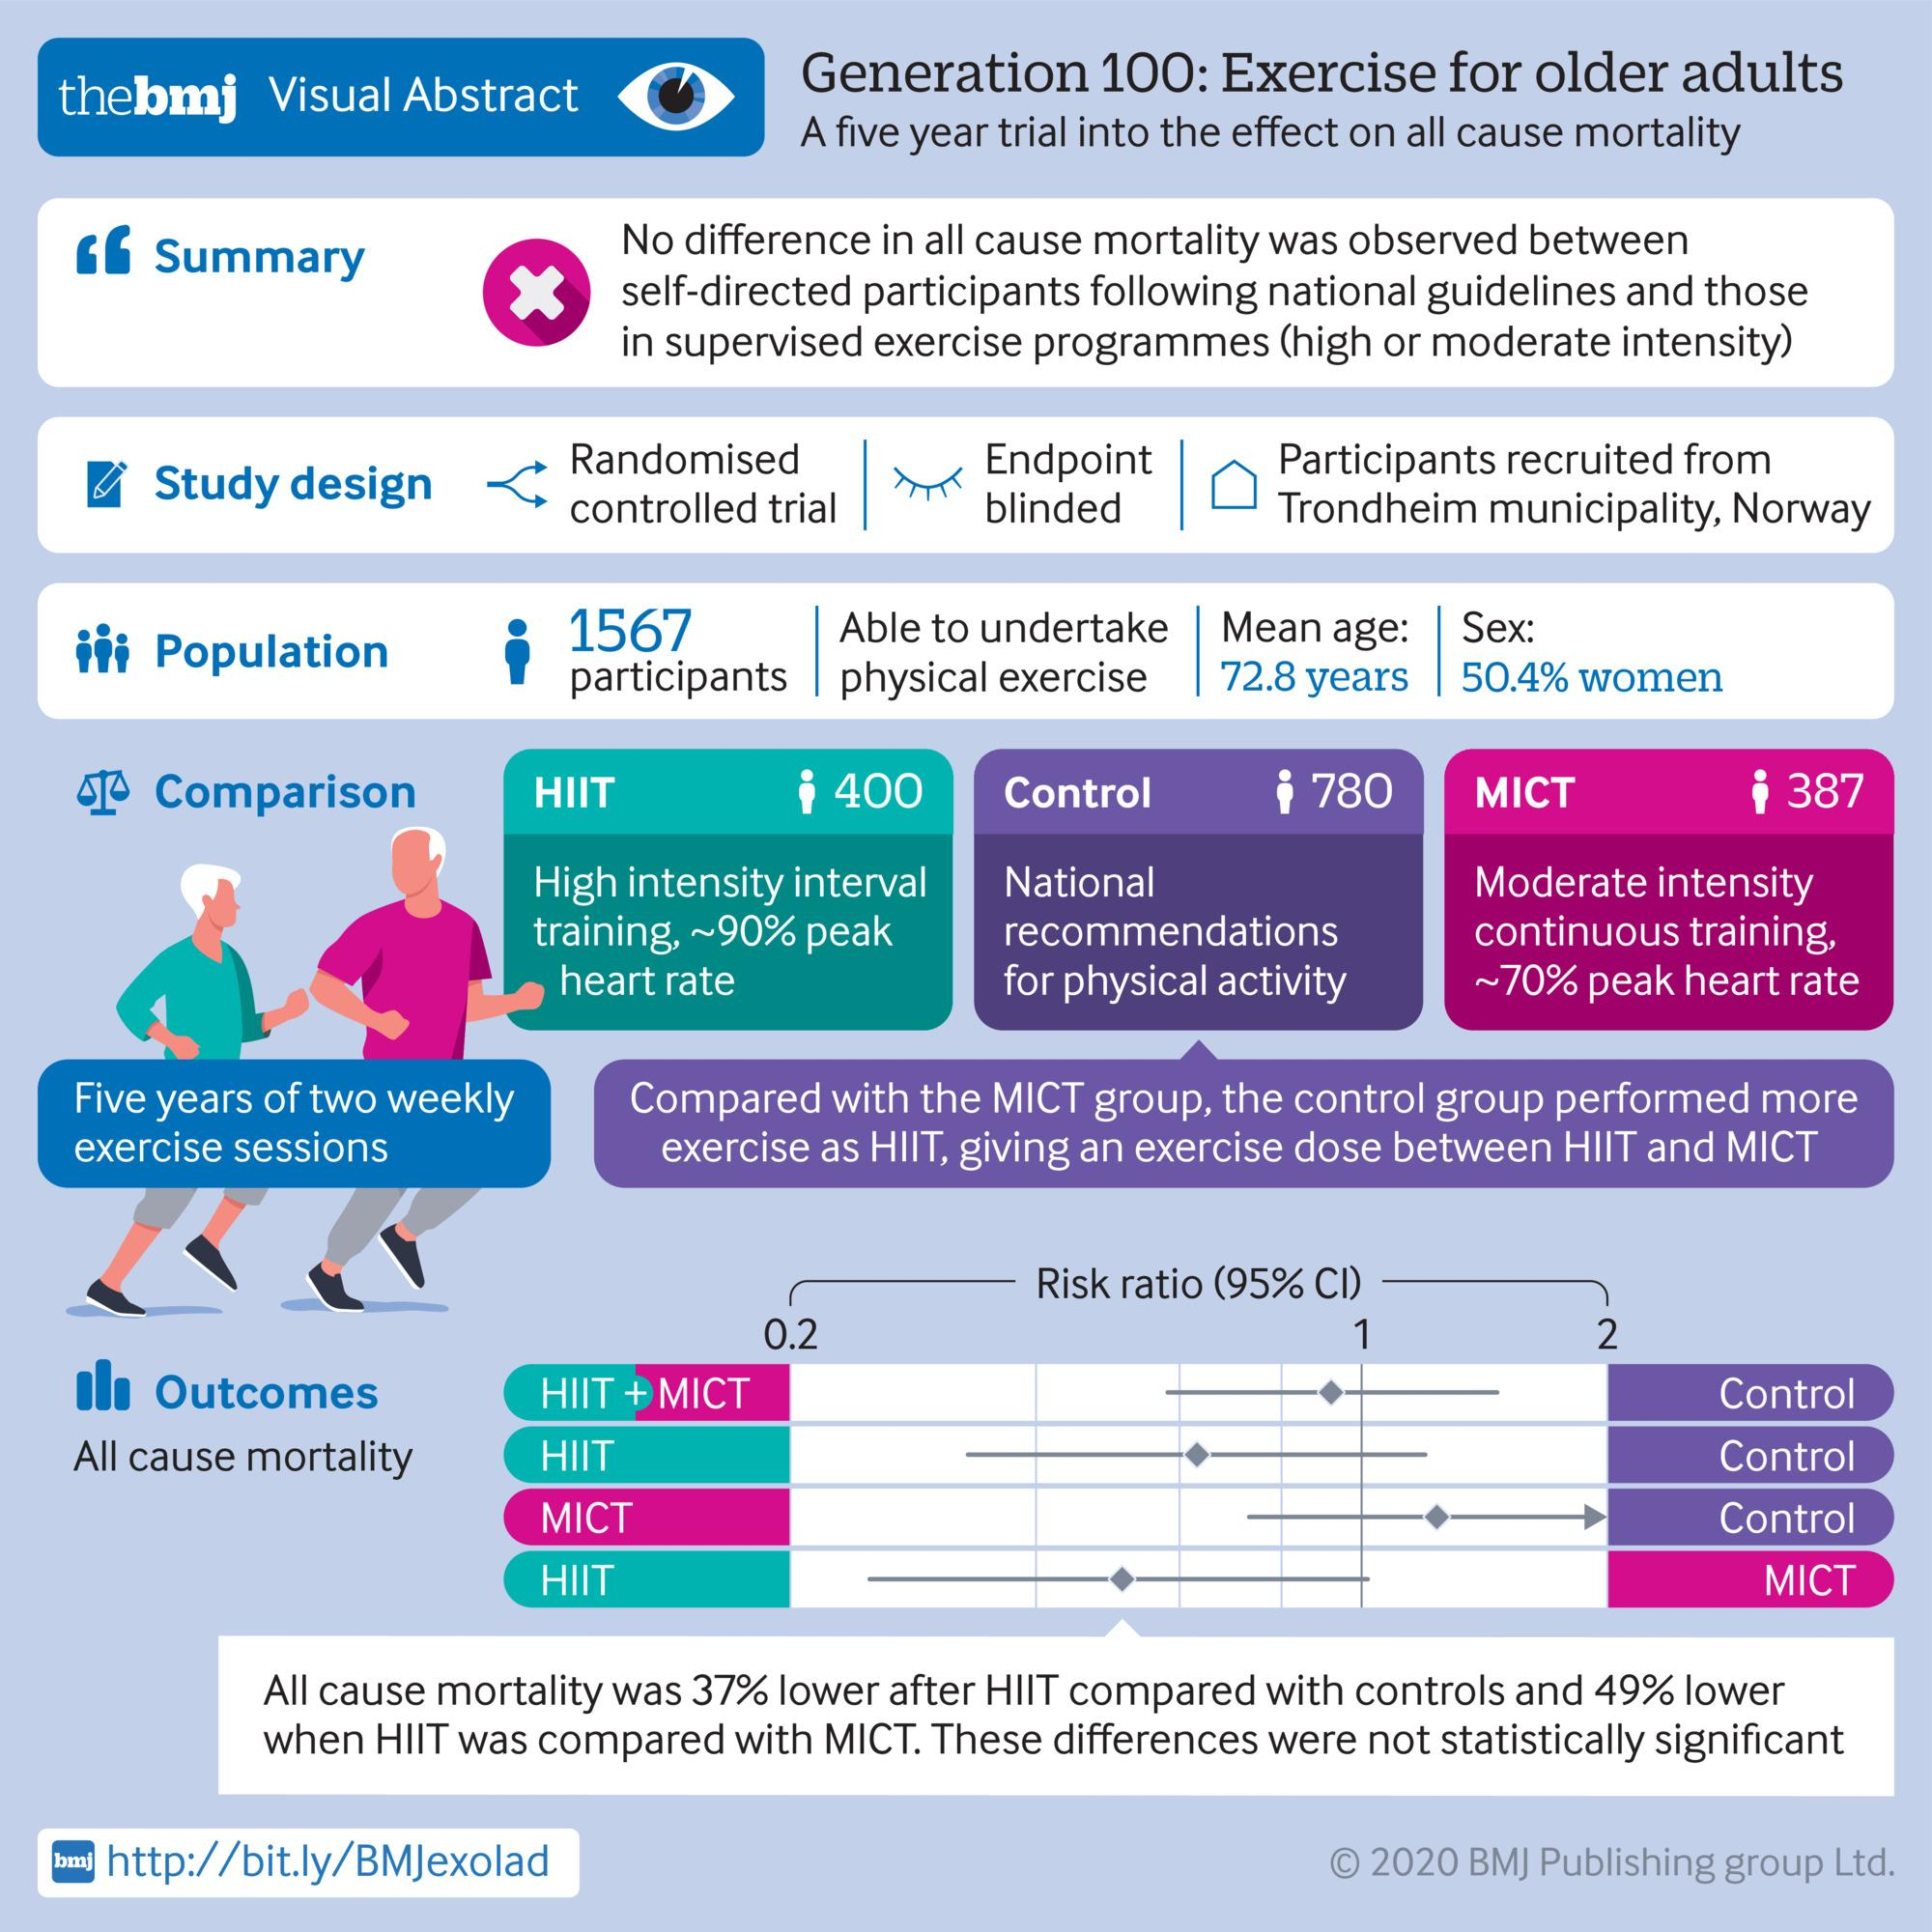 Generation 100: Exercise for older adults